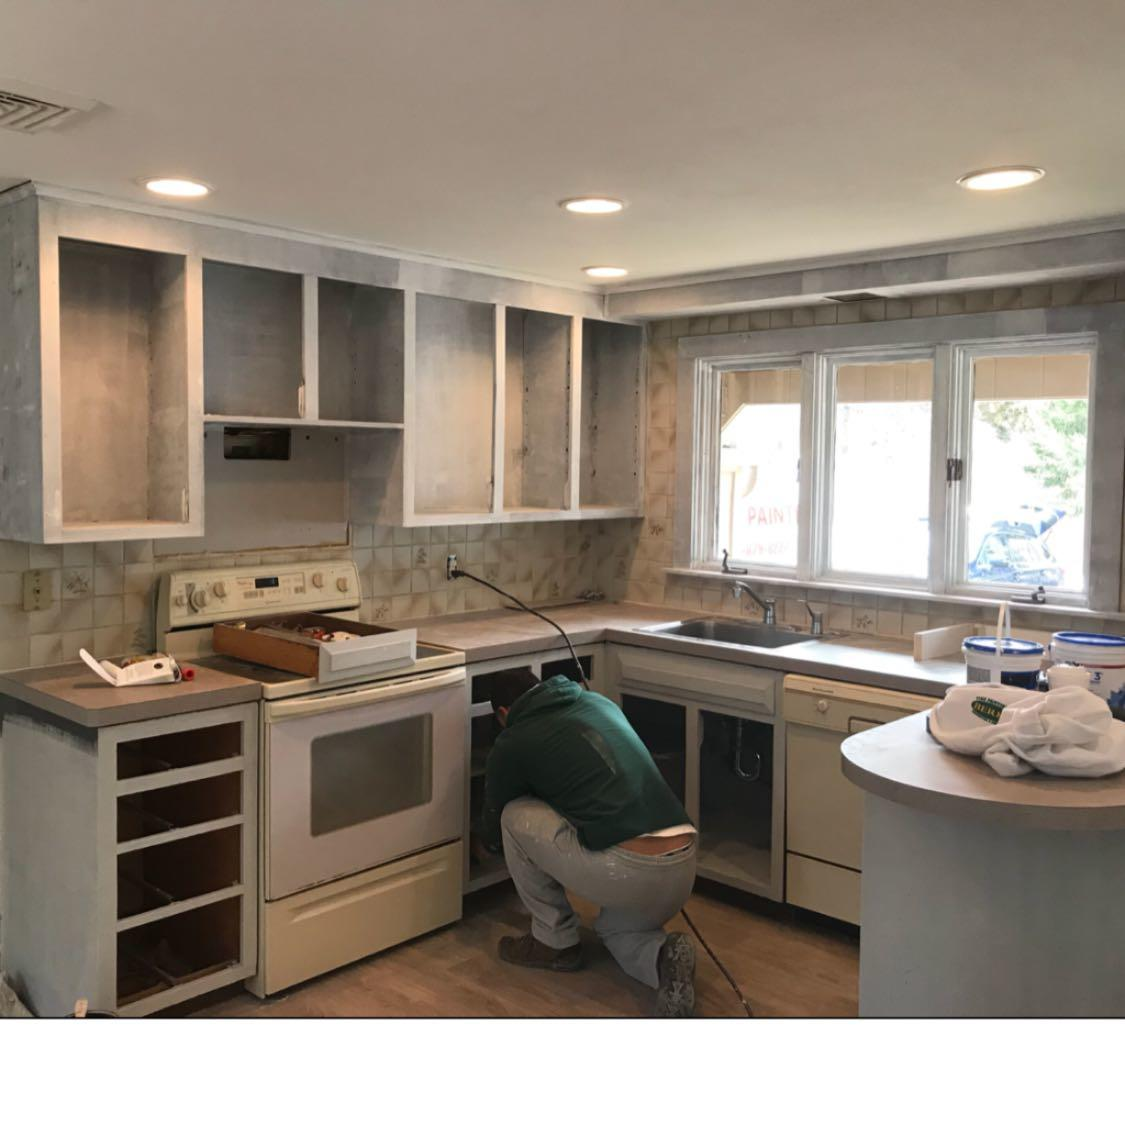 Interior Painting Of House: We Know The Requirements For Painting Houses In Seasonal